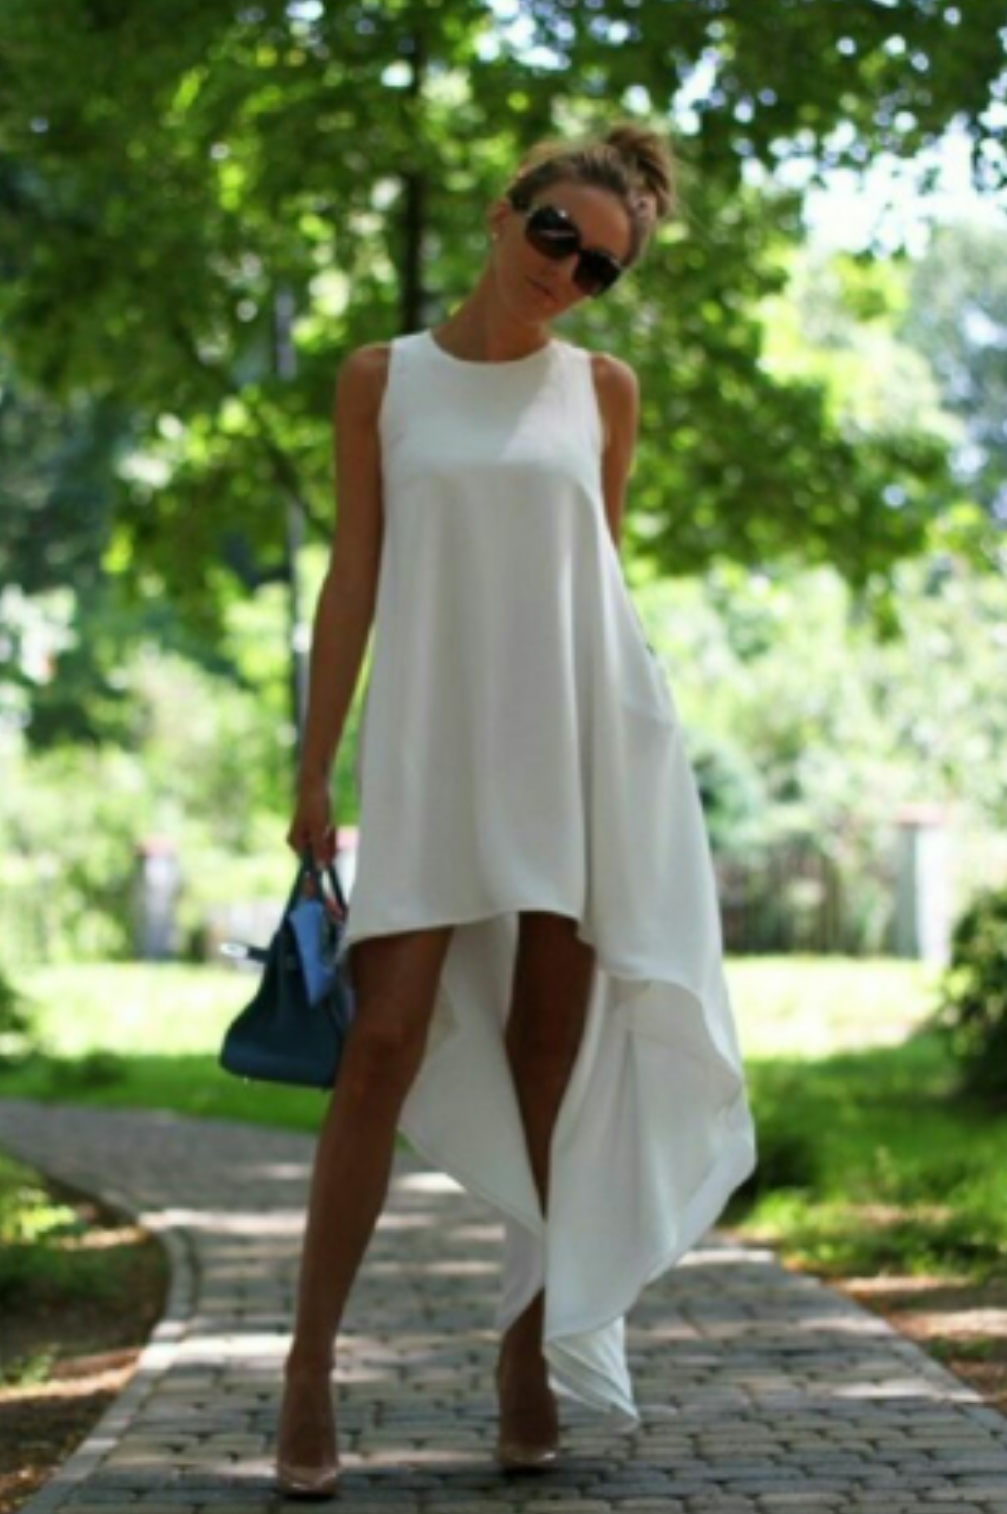 When inspiration hits mccall 39 s 6957 adrienne m nixon for Summer white party ideas